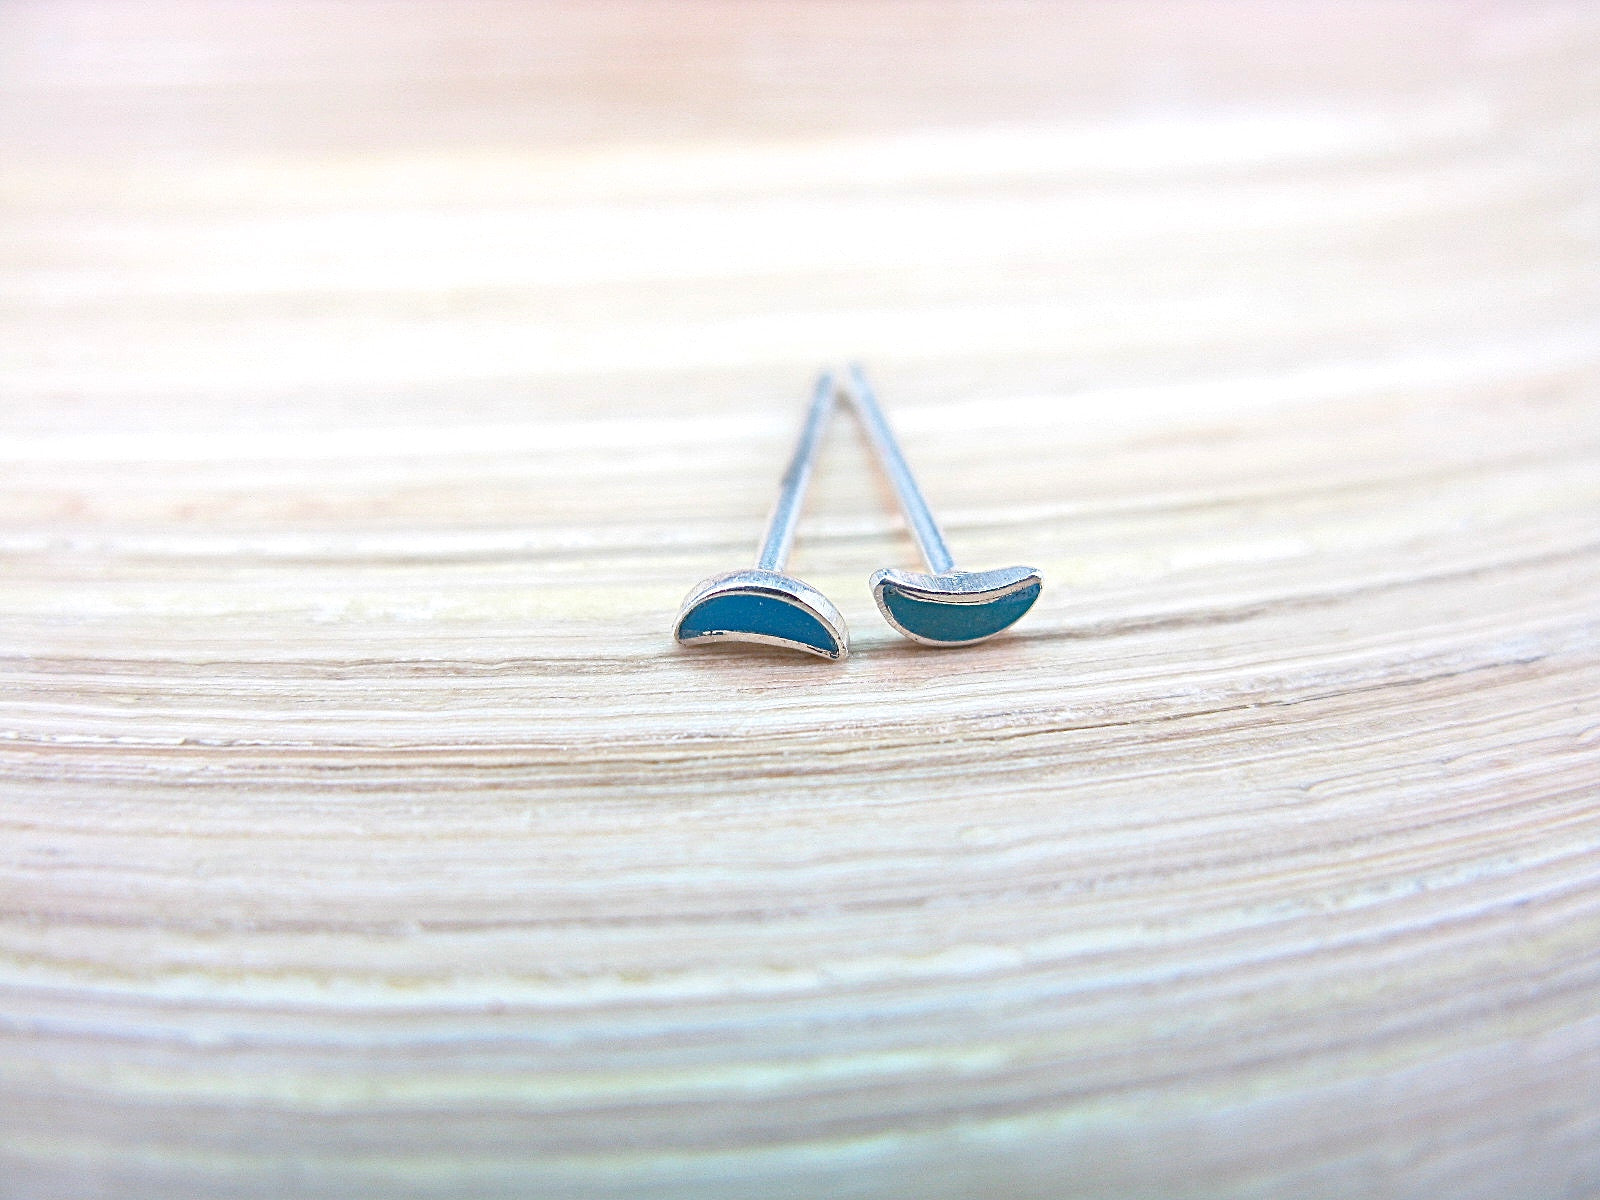 Turquoise Crescent Moon Stud Earrings in 925 Sterling Silver Stud Faith Owl - Faith Owl